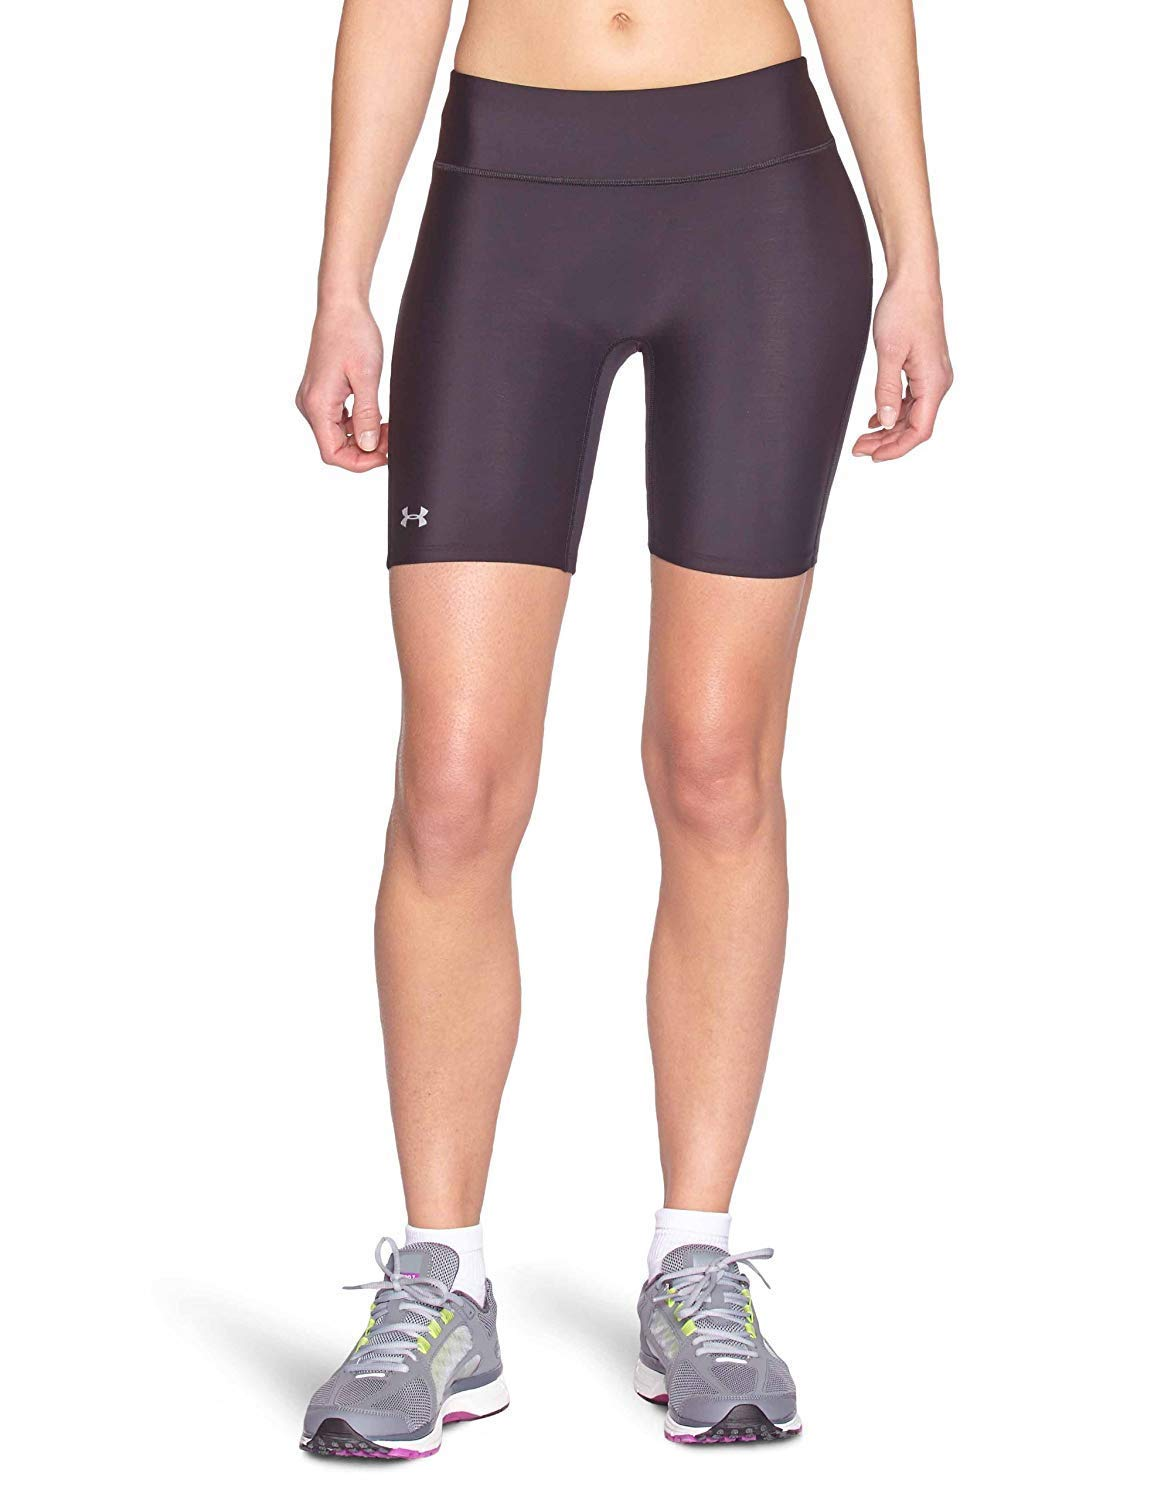 Under Armour Women's HeatGear Authentic Long Shorts, Black (001)/Silver, X-Small by Under Armour